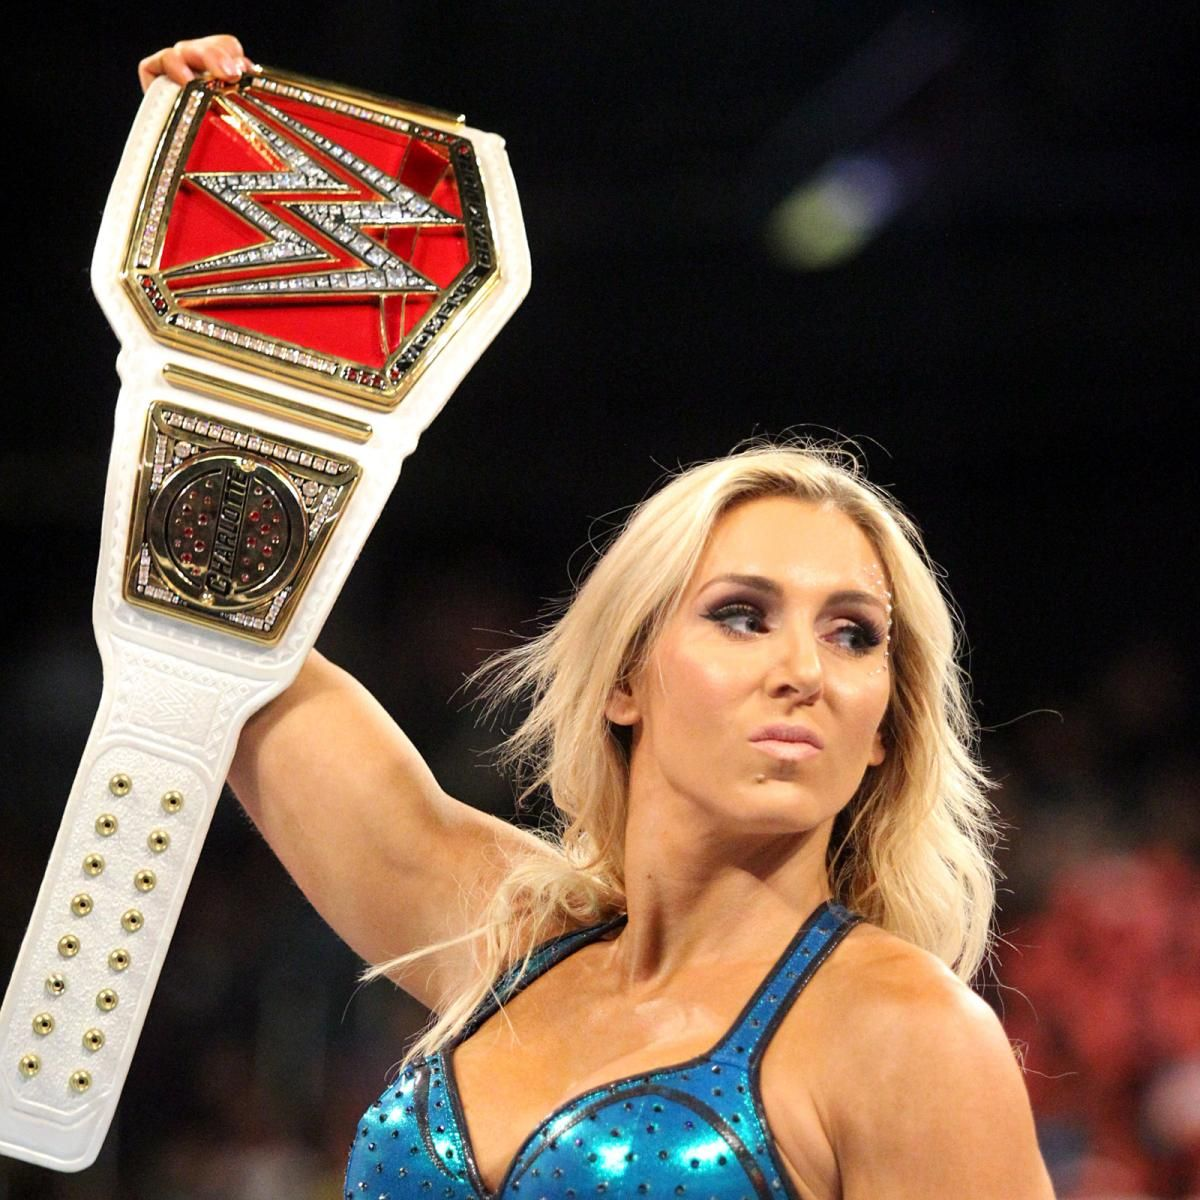 Wwe extreme rules 2016 wwe women s champion charlotte vs natalya submission match